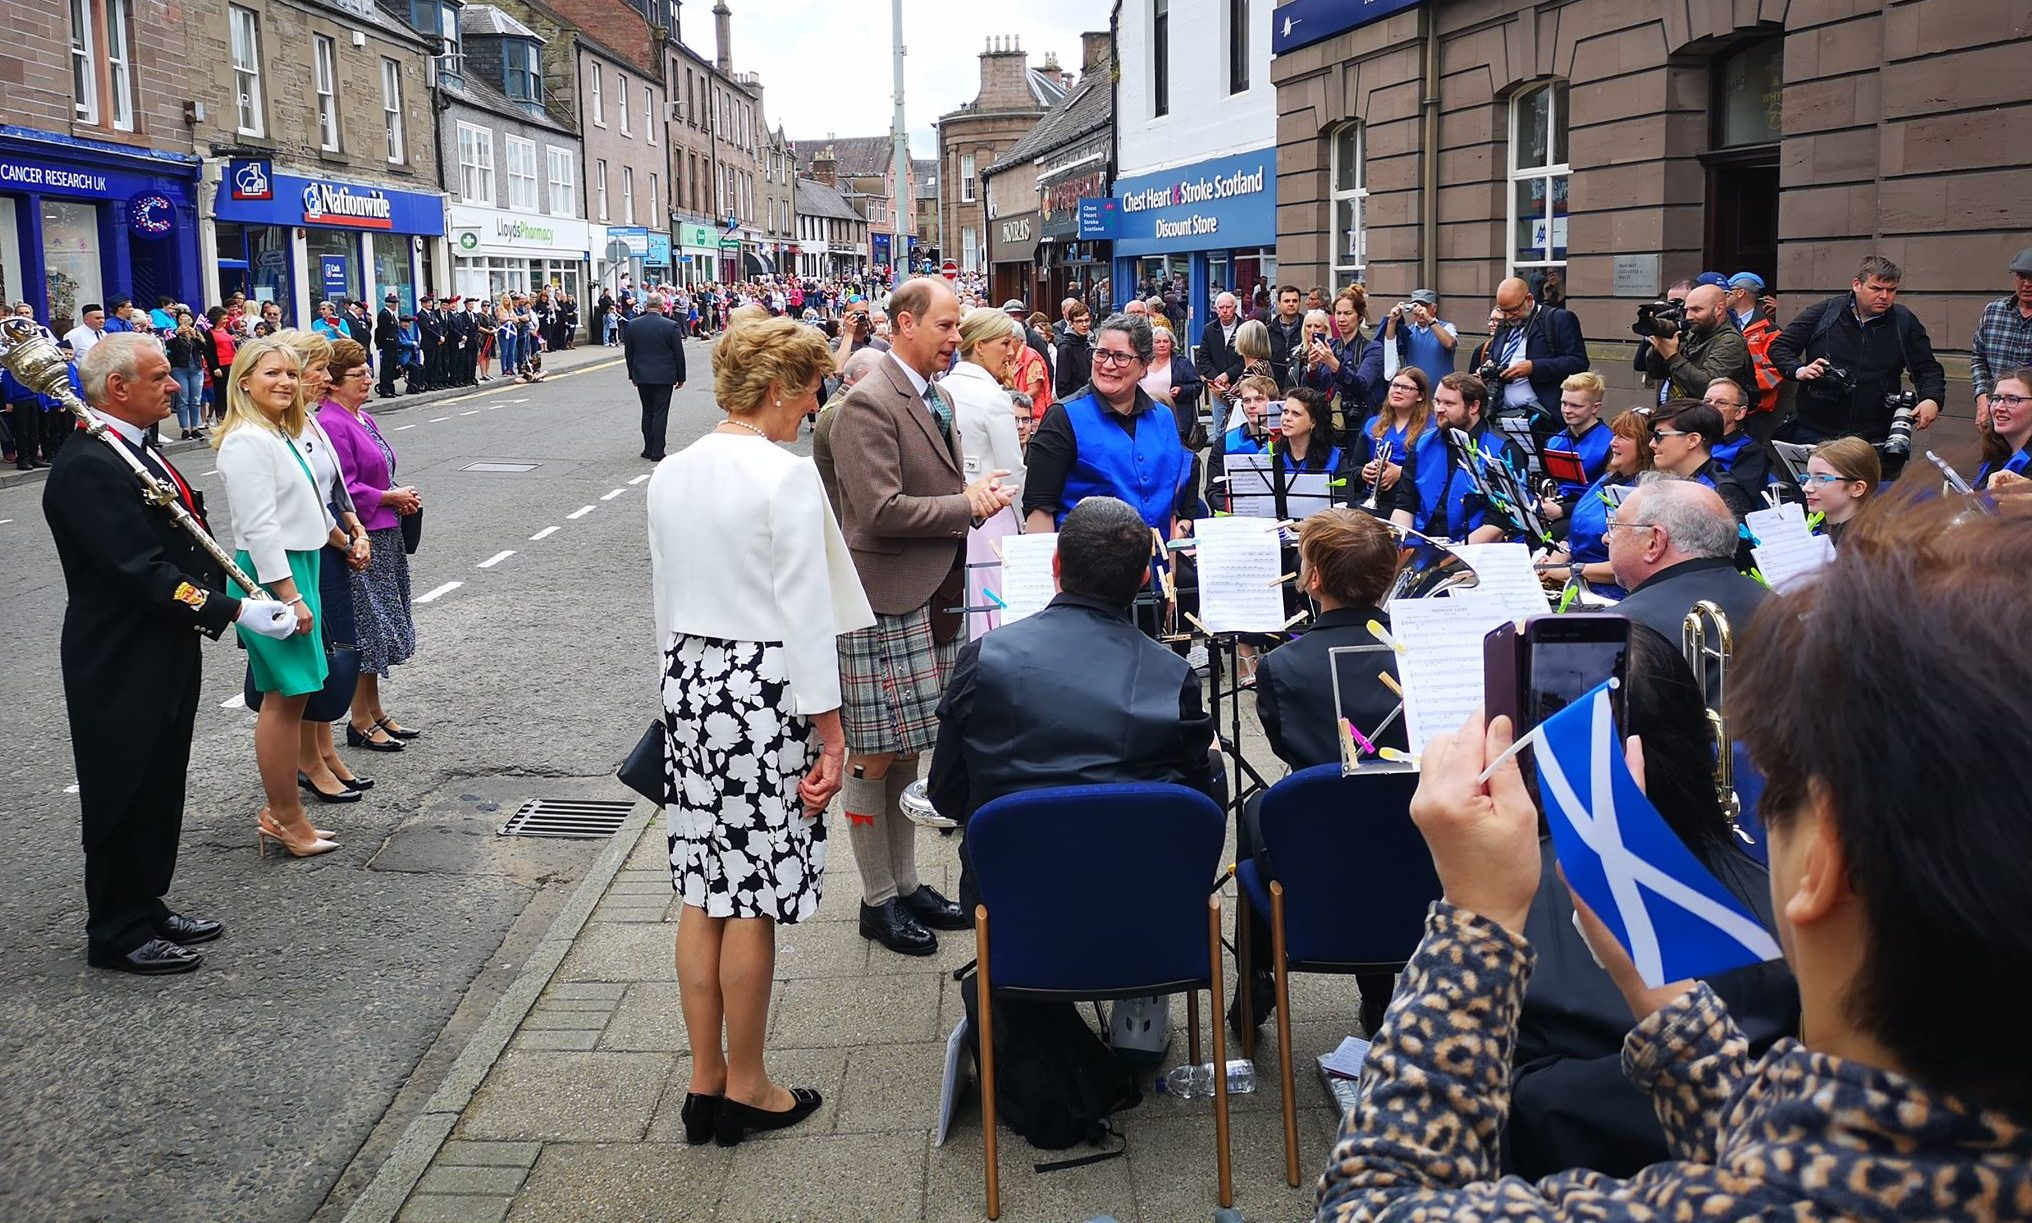 Royal visit: Crowds welcome new Earl and Countess to Forfar on inaugural visit - The Courier